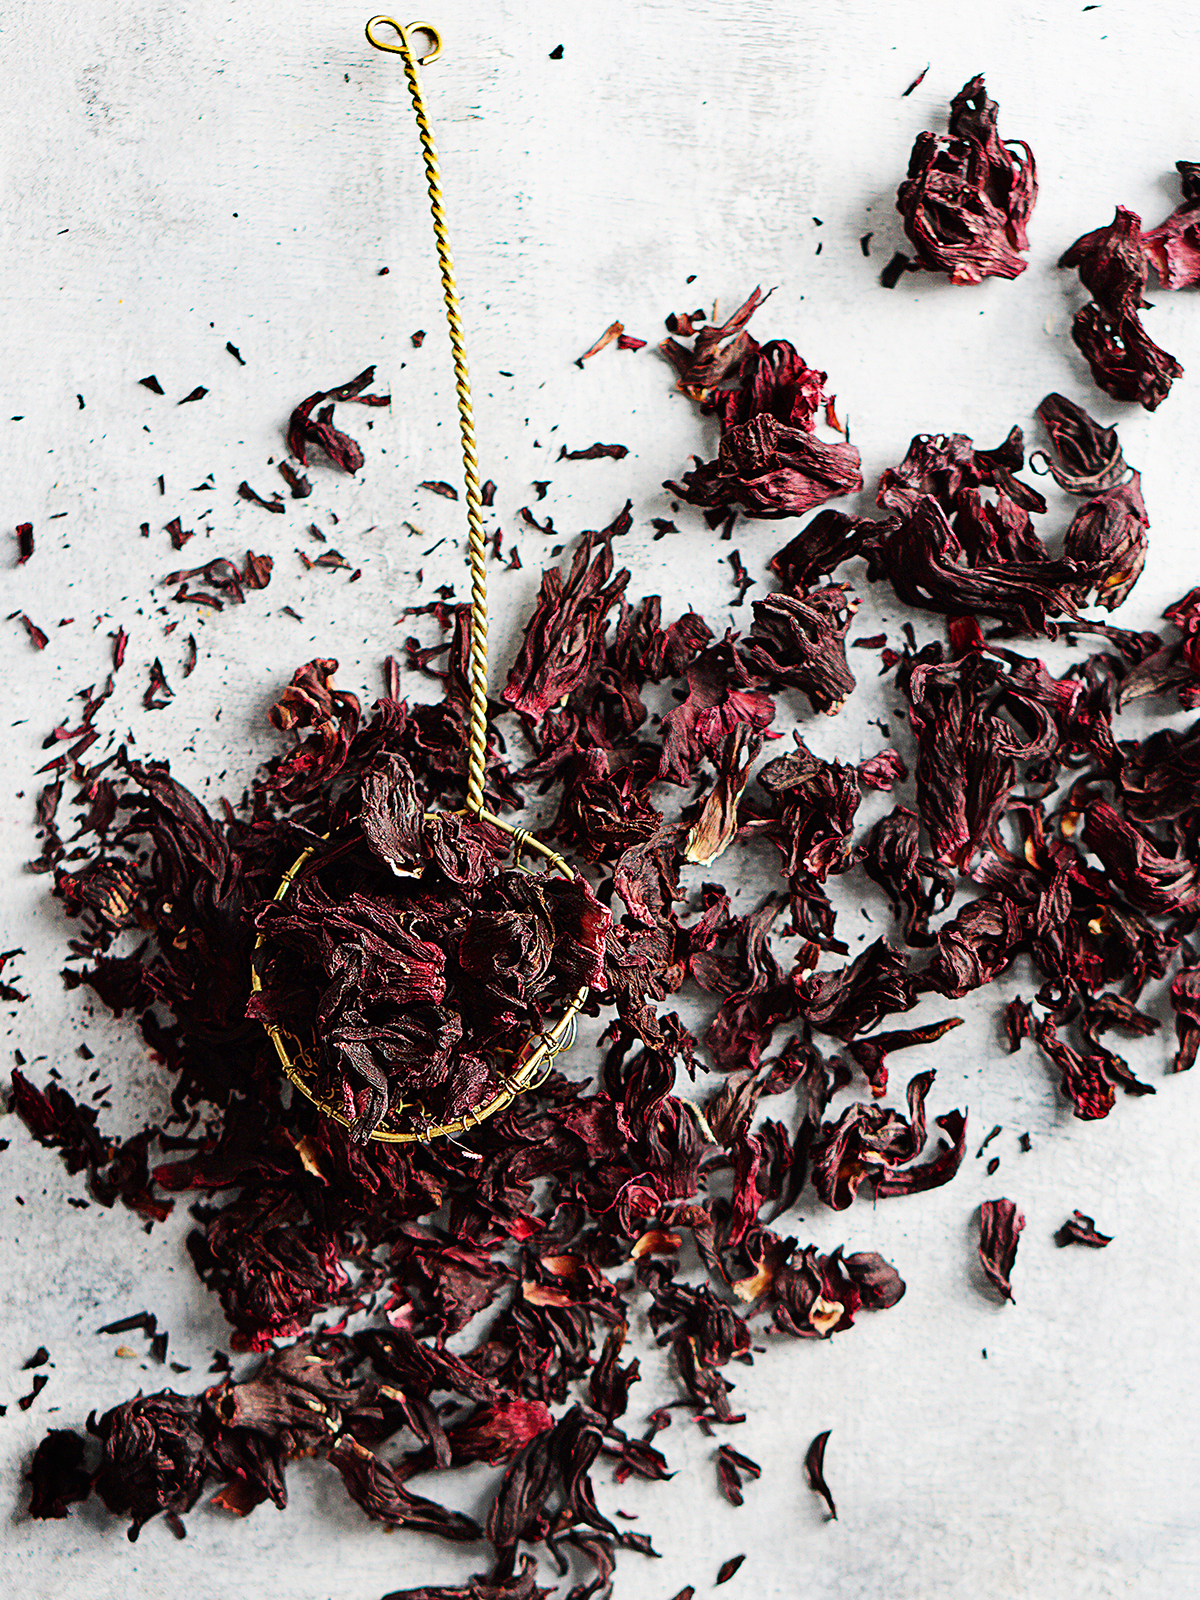 Dried roselle flowers scattered on a blue background